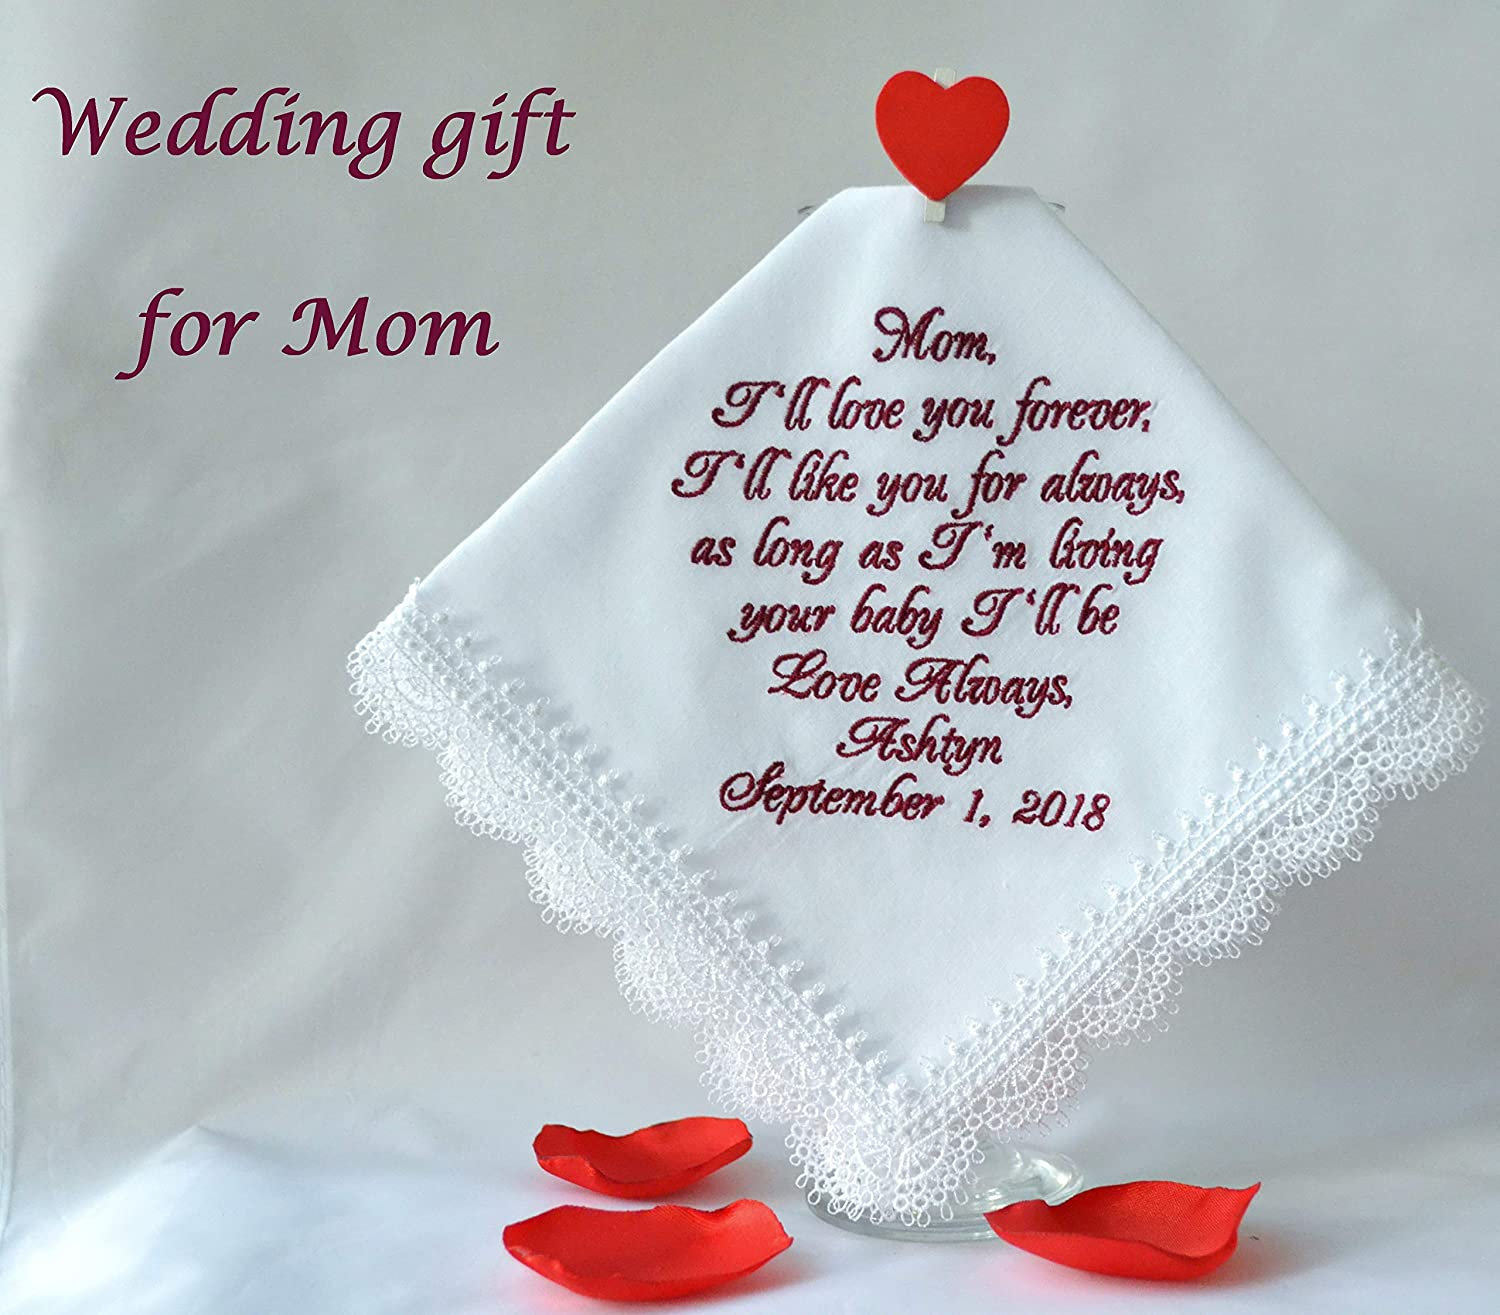 Burgundy wedding Gift for Mother of the bride I'll love you forever, Wedding gift for Mom from daughter Personalized hankie Custom Hanky Wedding Handkerchief embroidered wedding keepsake